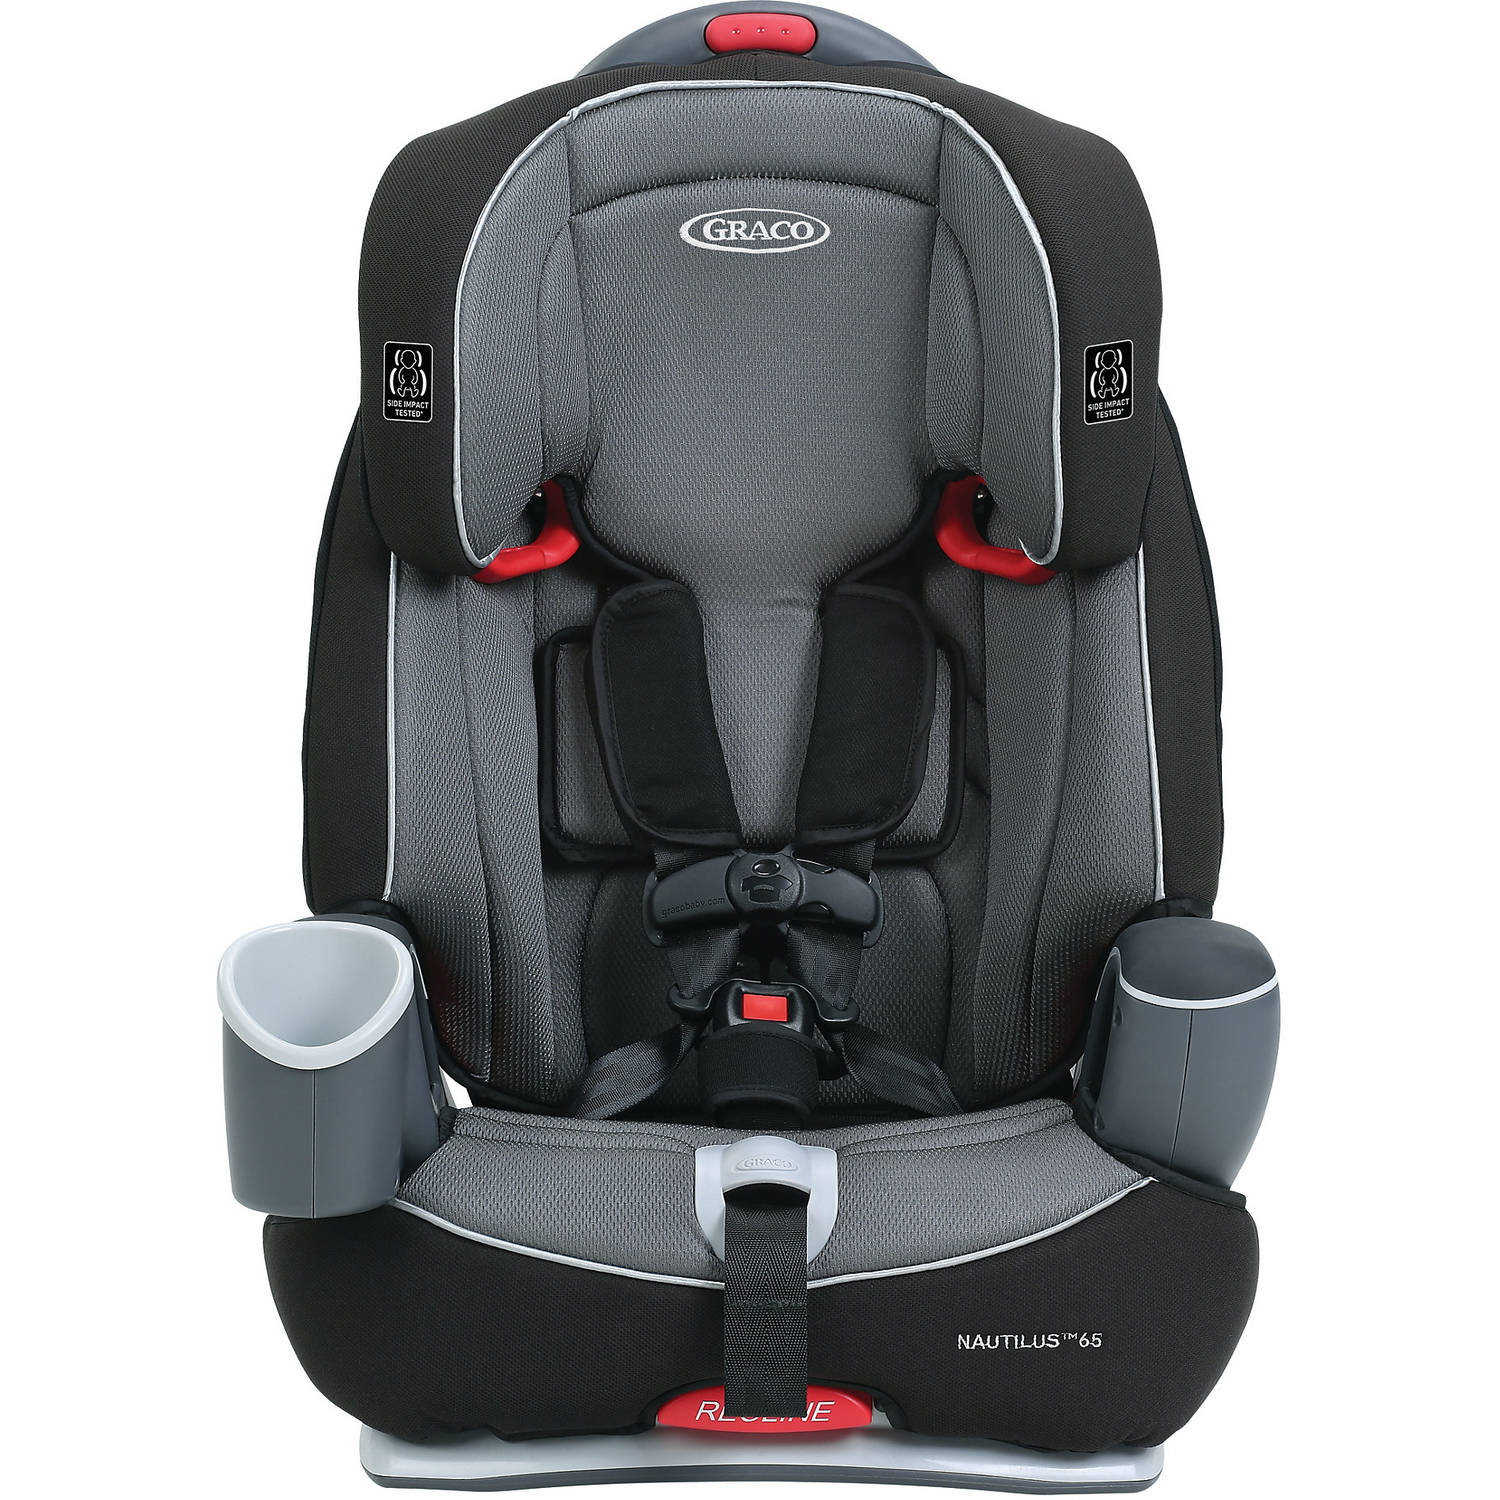 Schematics Of A Car Seat : Graco wiring diagram ingersoll rand dhw